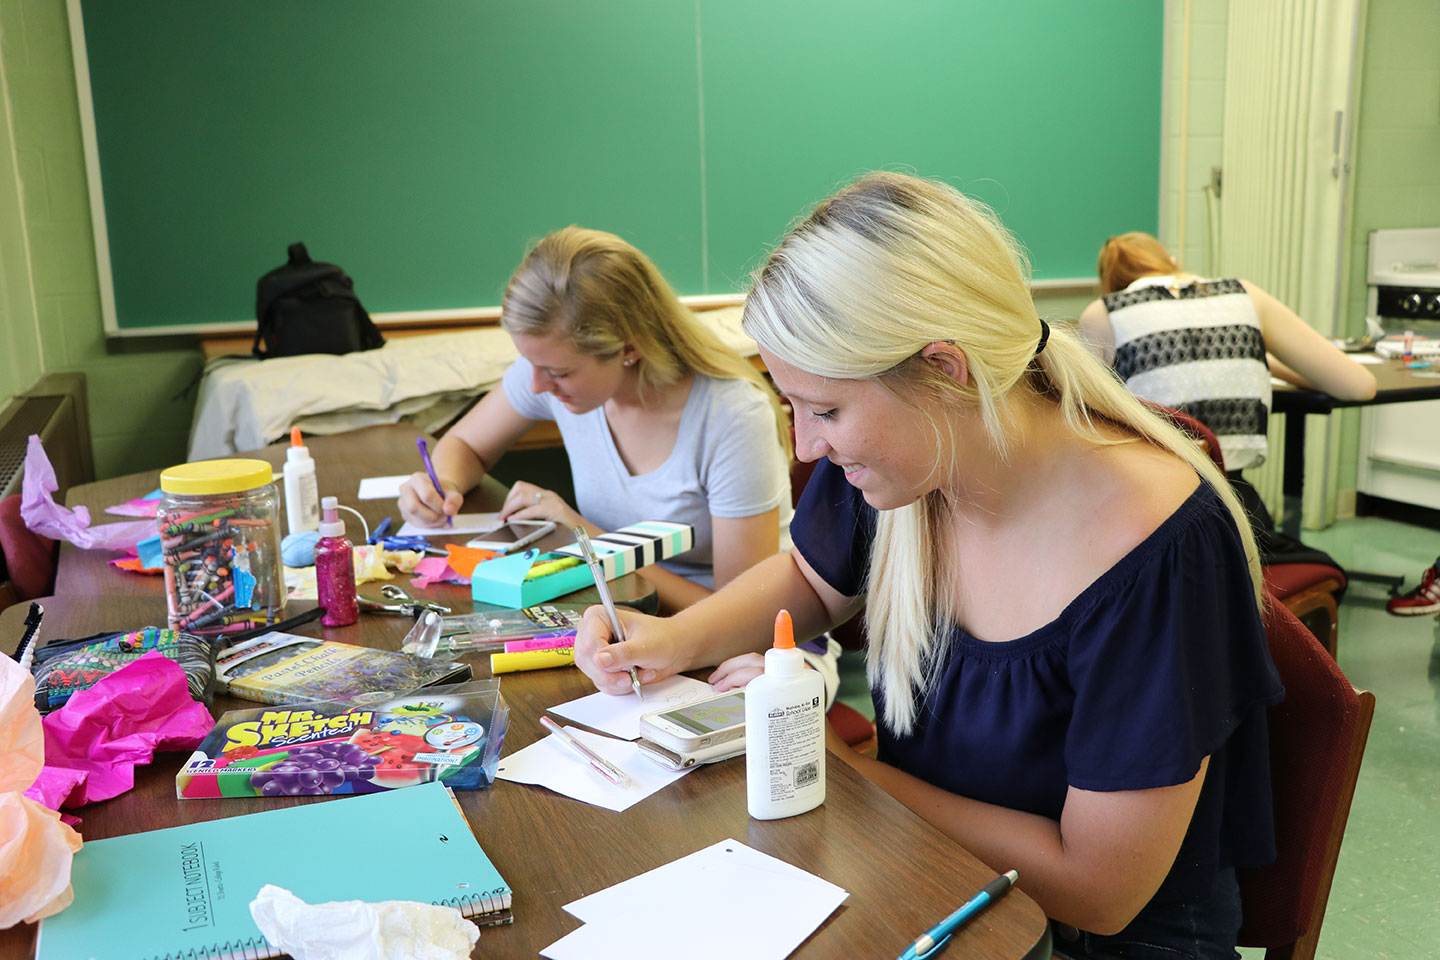 Graduate students working on an art project